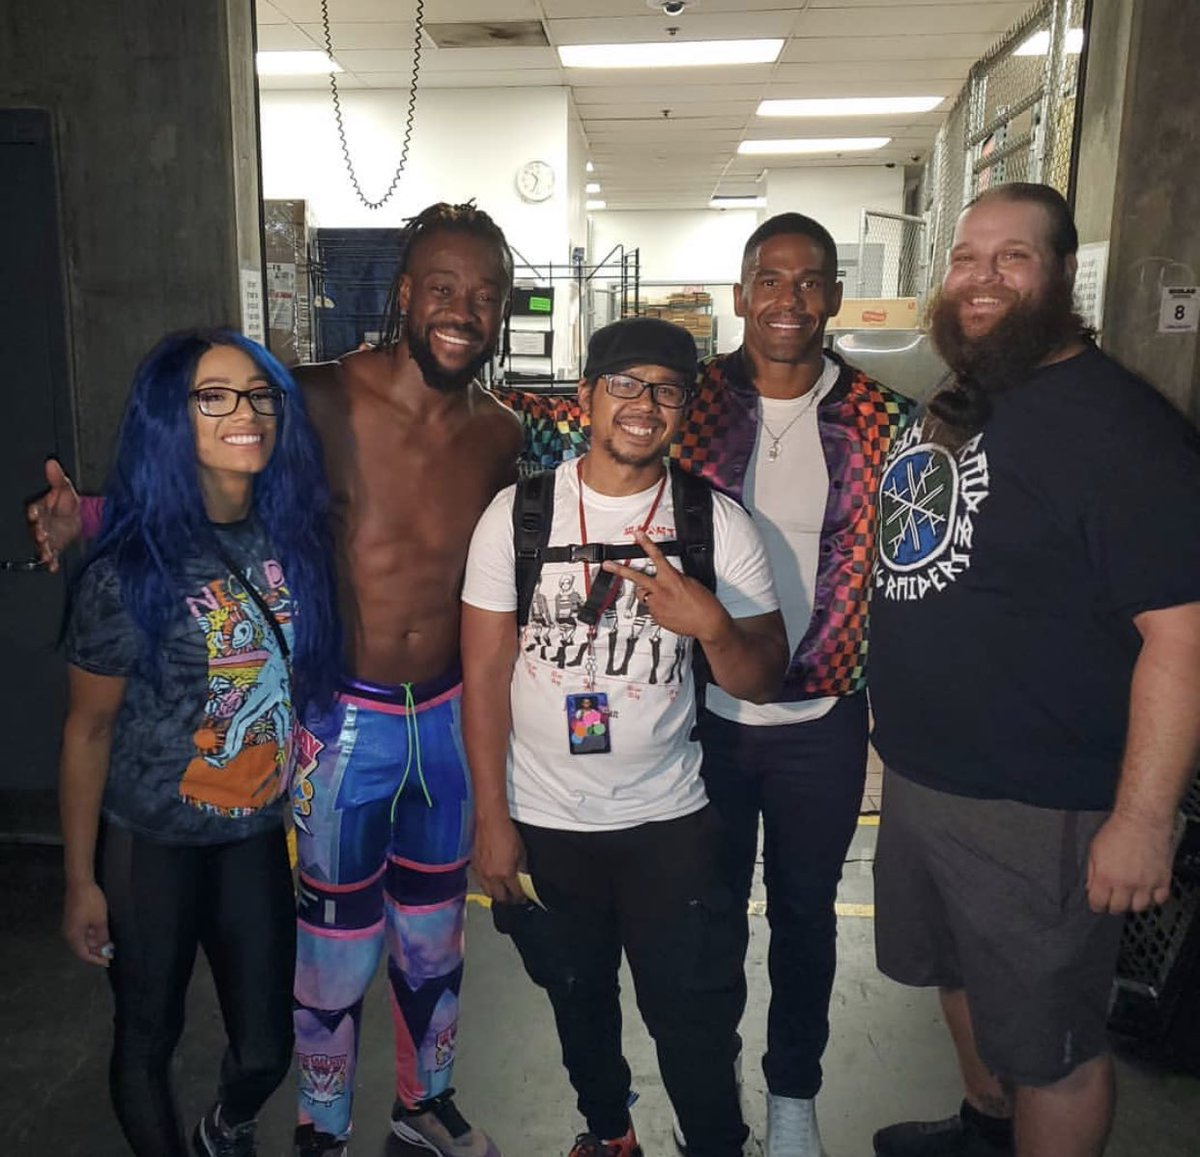 Ladies and gentlemen, the moment we've all been waiting for... it's Flashback Friday with the Chaotic Crew📸 @SashaBanksWWE @TrueKofi @IamMikaze @Ivar_WWE🤘🏼 • • • • Follow my #Podcast 🎙https://t.co/BAyi8cqJNj #flashbackfriday #BlockTheHate #LA https://t.co/XaAyU26v8a